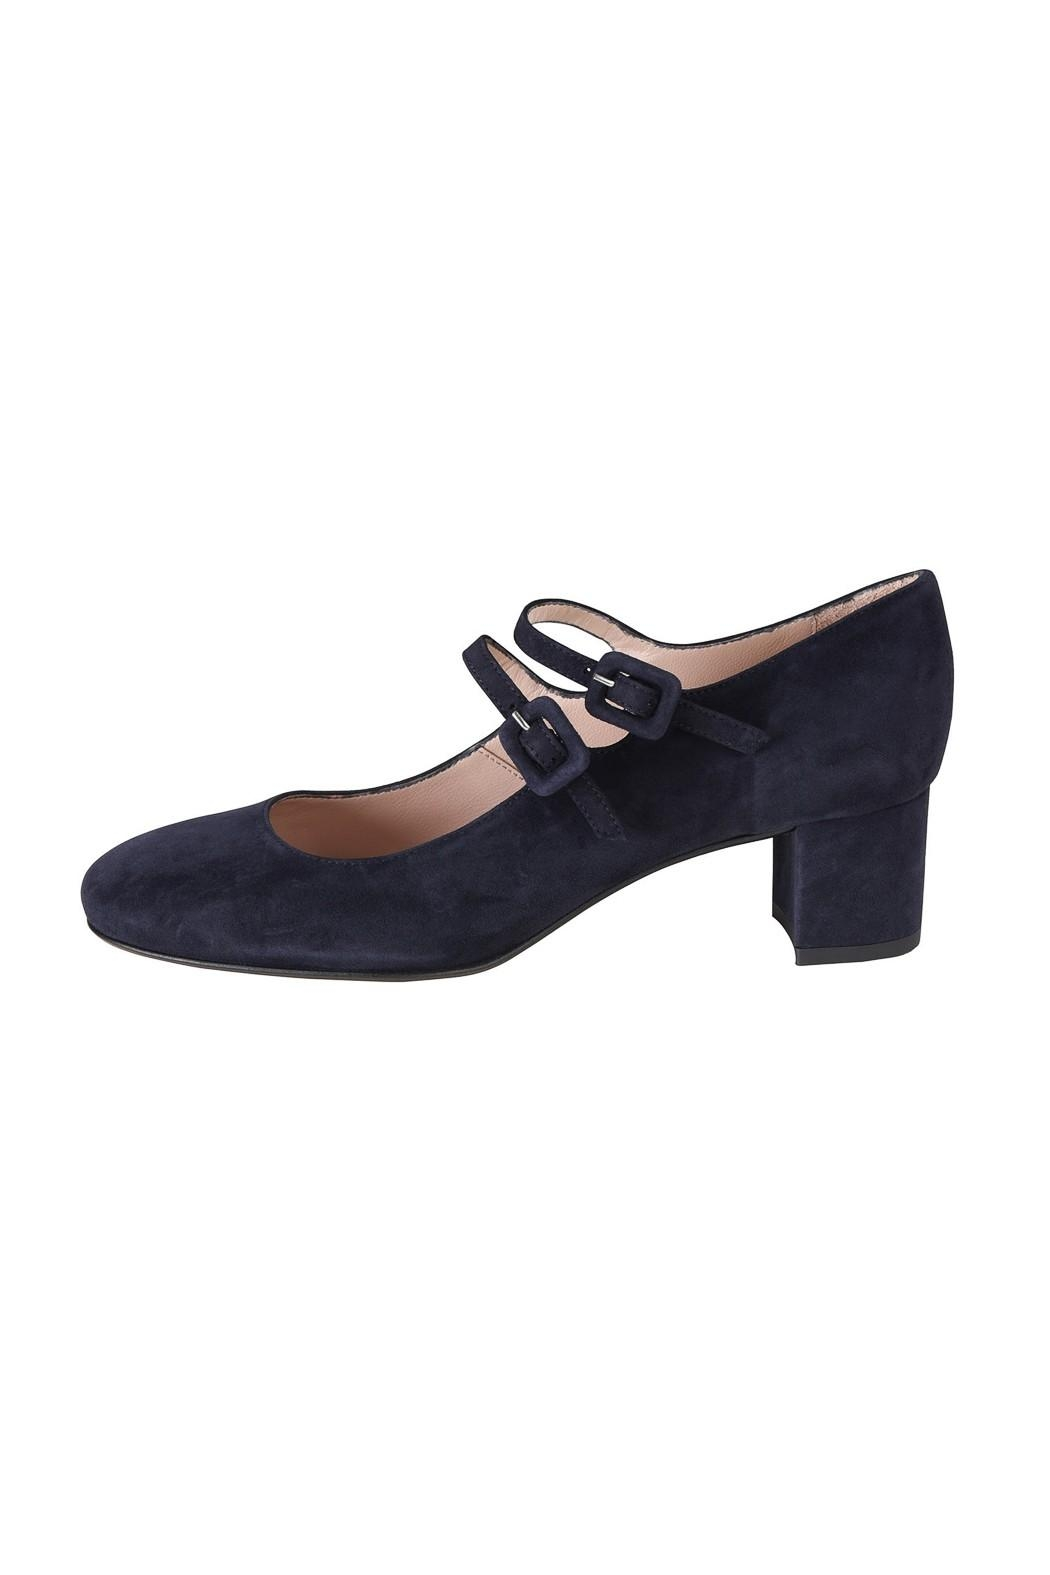 Pascucci Navy Suede Mary-Jane - Main Image